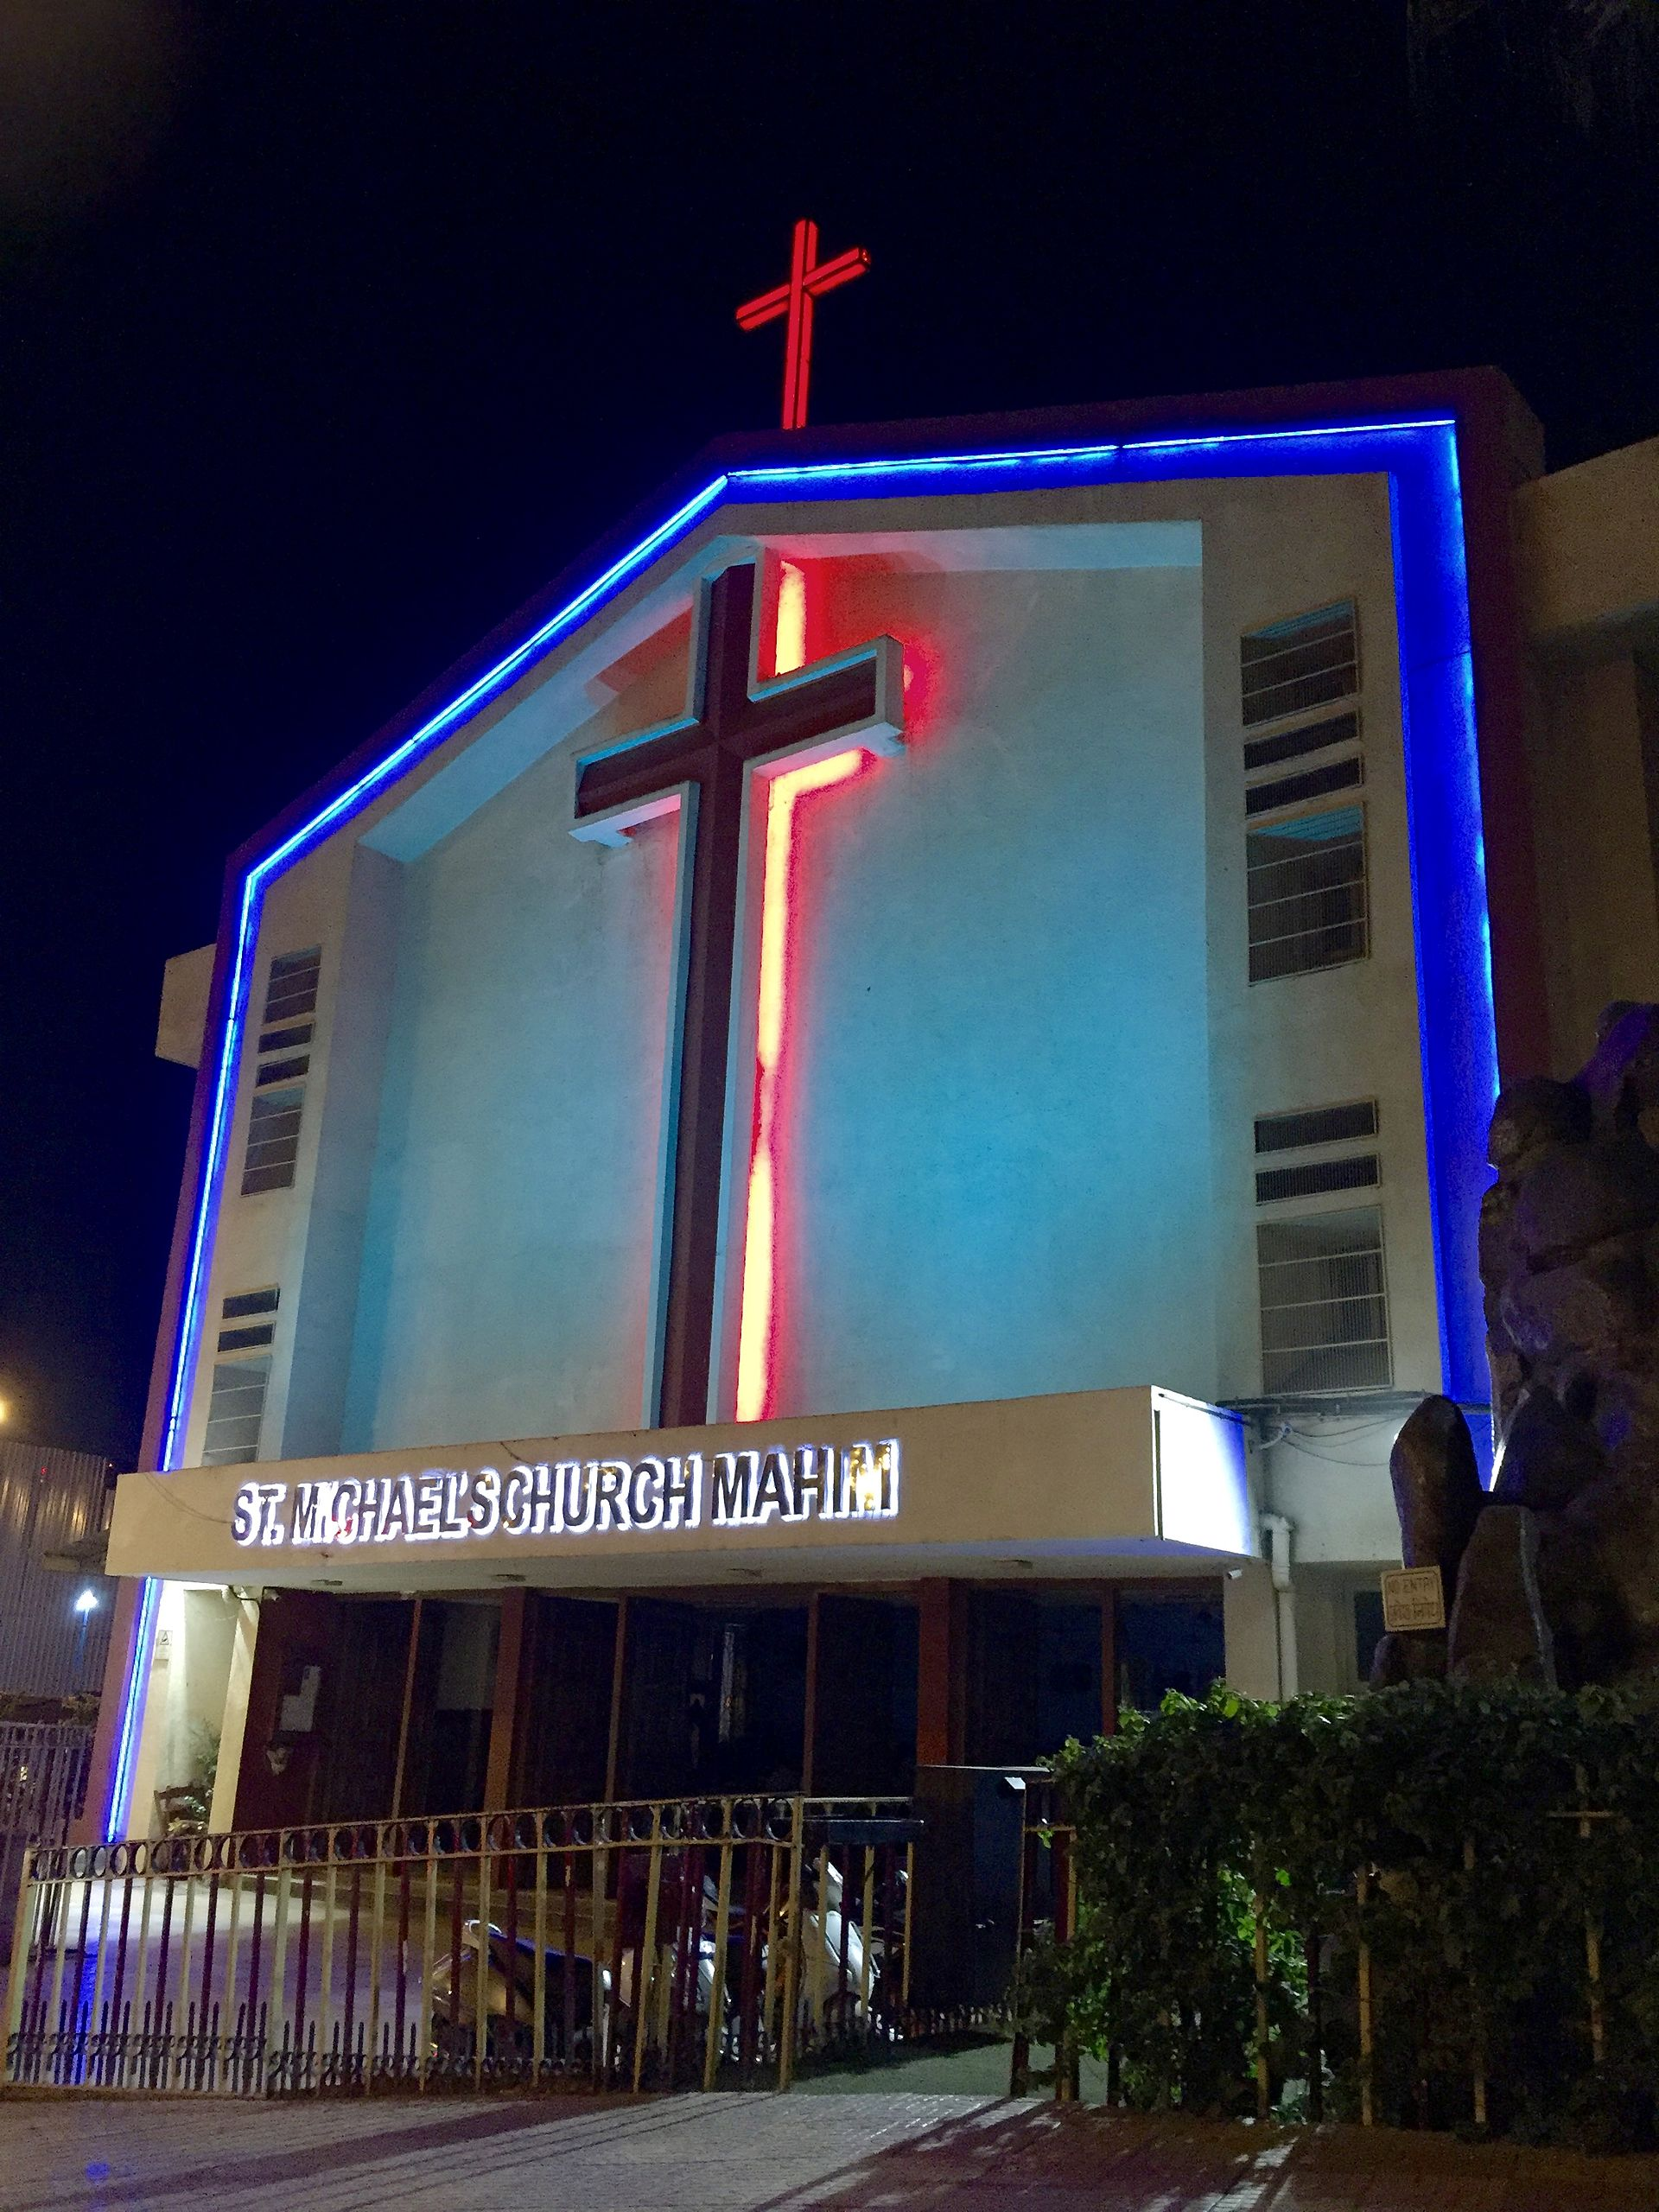 catholic singles in bombay Bombay catholic singles powered by rio wines is having a meet up date: tuesday 5th may 2015, time: 7pm onwards venue: i-bar, behind lilavati hospital, bandra cost: rs 800 which includes 3 veg and 3 non veg starters and 2 glasses of rio fizzy wines invite your single catholic friends start by making friends, you never know where it.